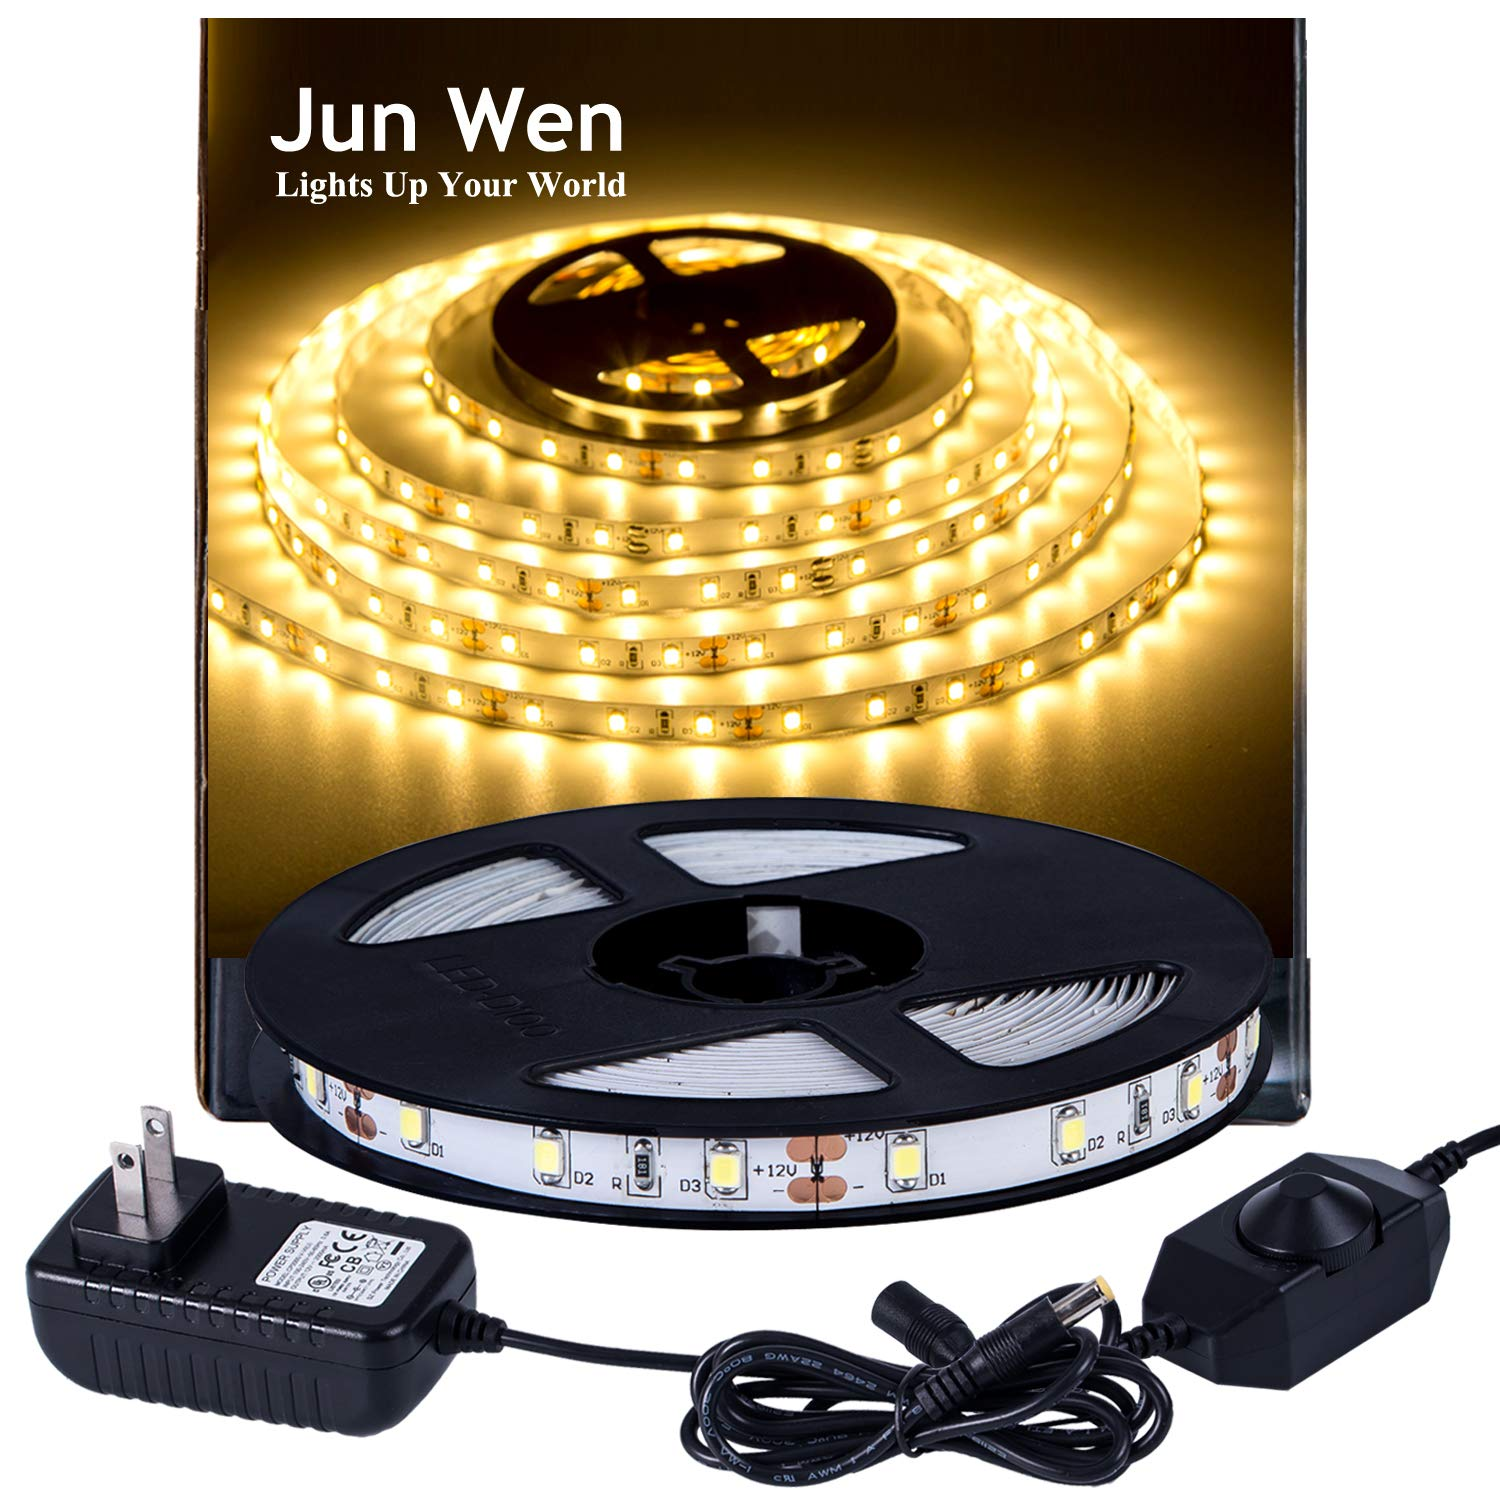 JUNWEN Flexible LED Strip Light Kit 3000K Warm White 16.4ft/5M 300 Units LED Tape SMD 2835 LEDs Non-Waterproof Dimmable LED Rope Lighting with 2A UL Listed Power Supply for Kitchen Car Bar Clubs